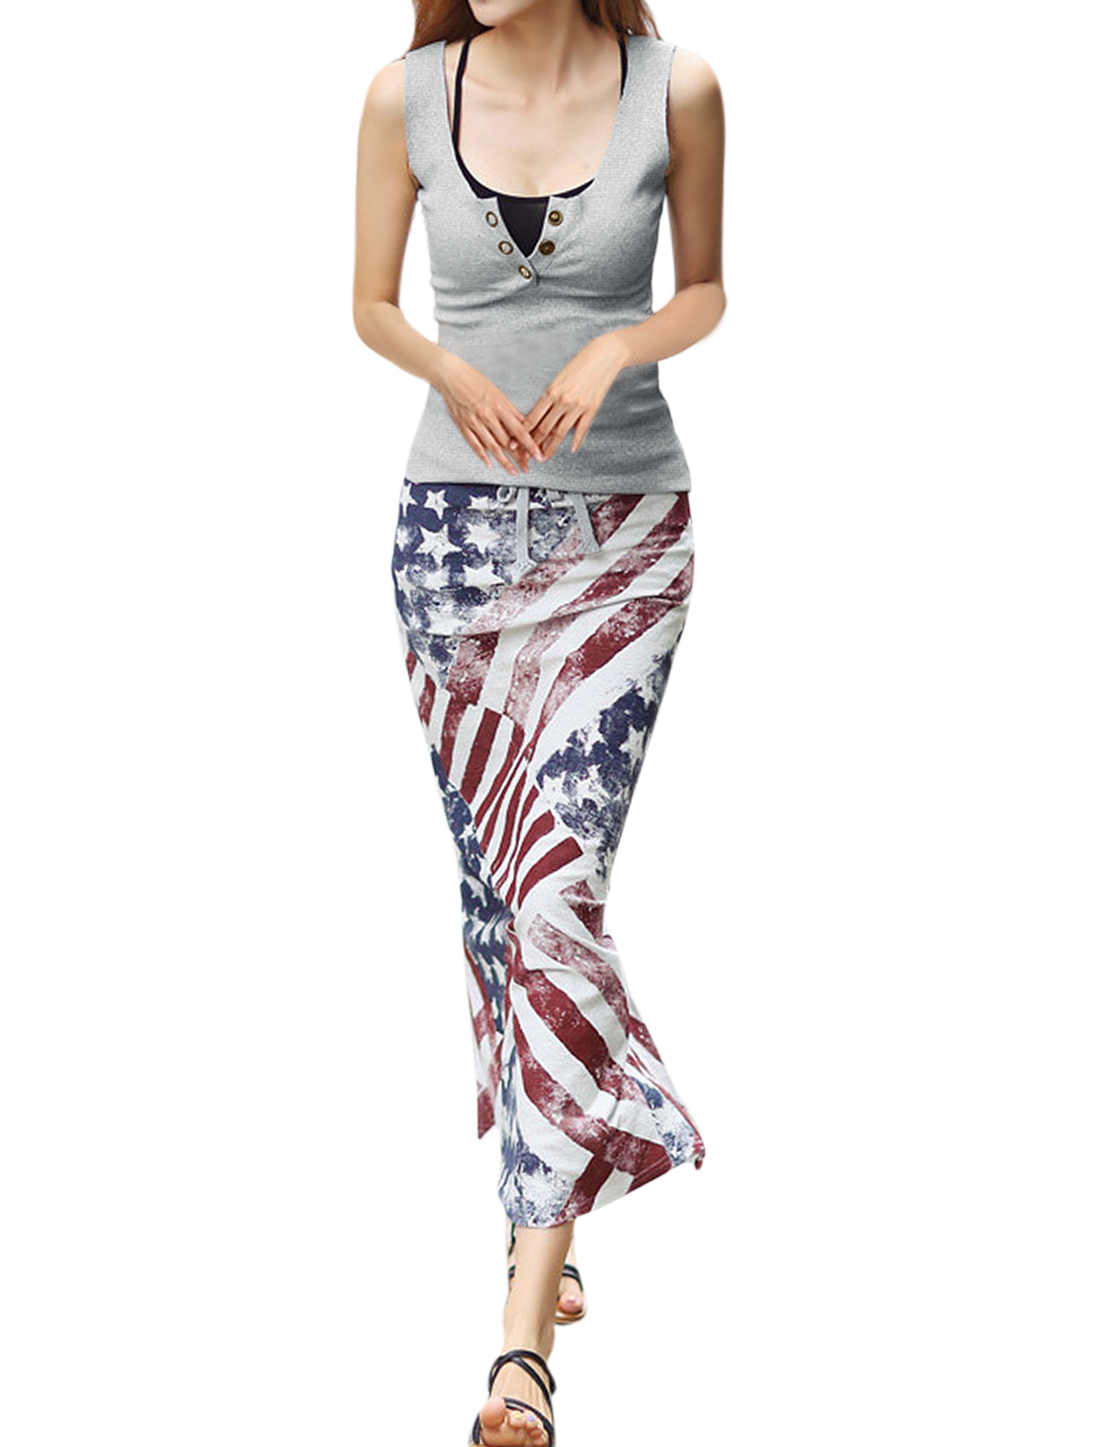 Women Buttons Closure Light Gray Knit Top w American Flag Prints Straight Skirt Multicolor S